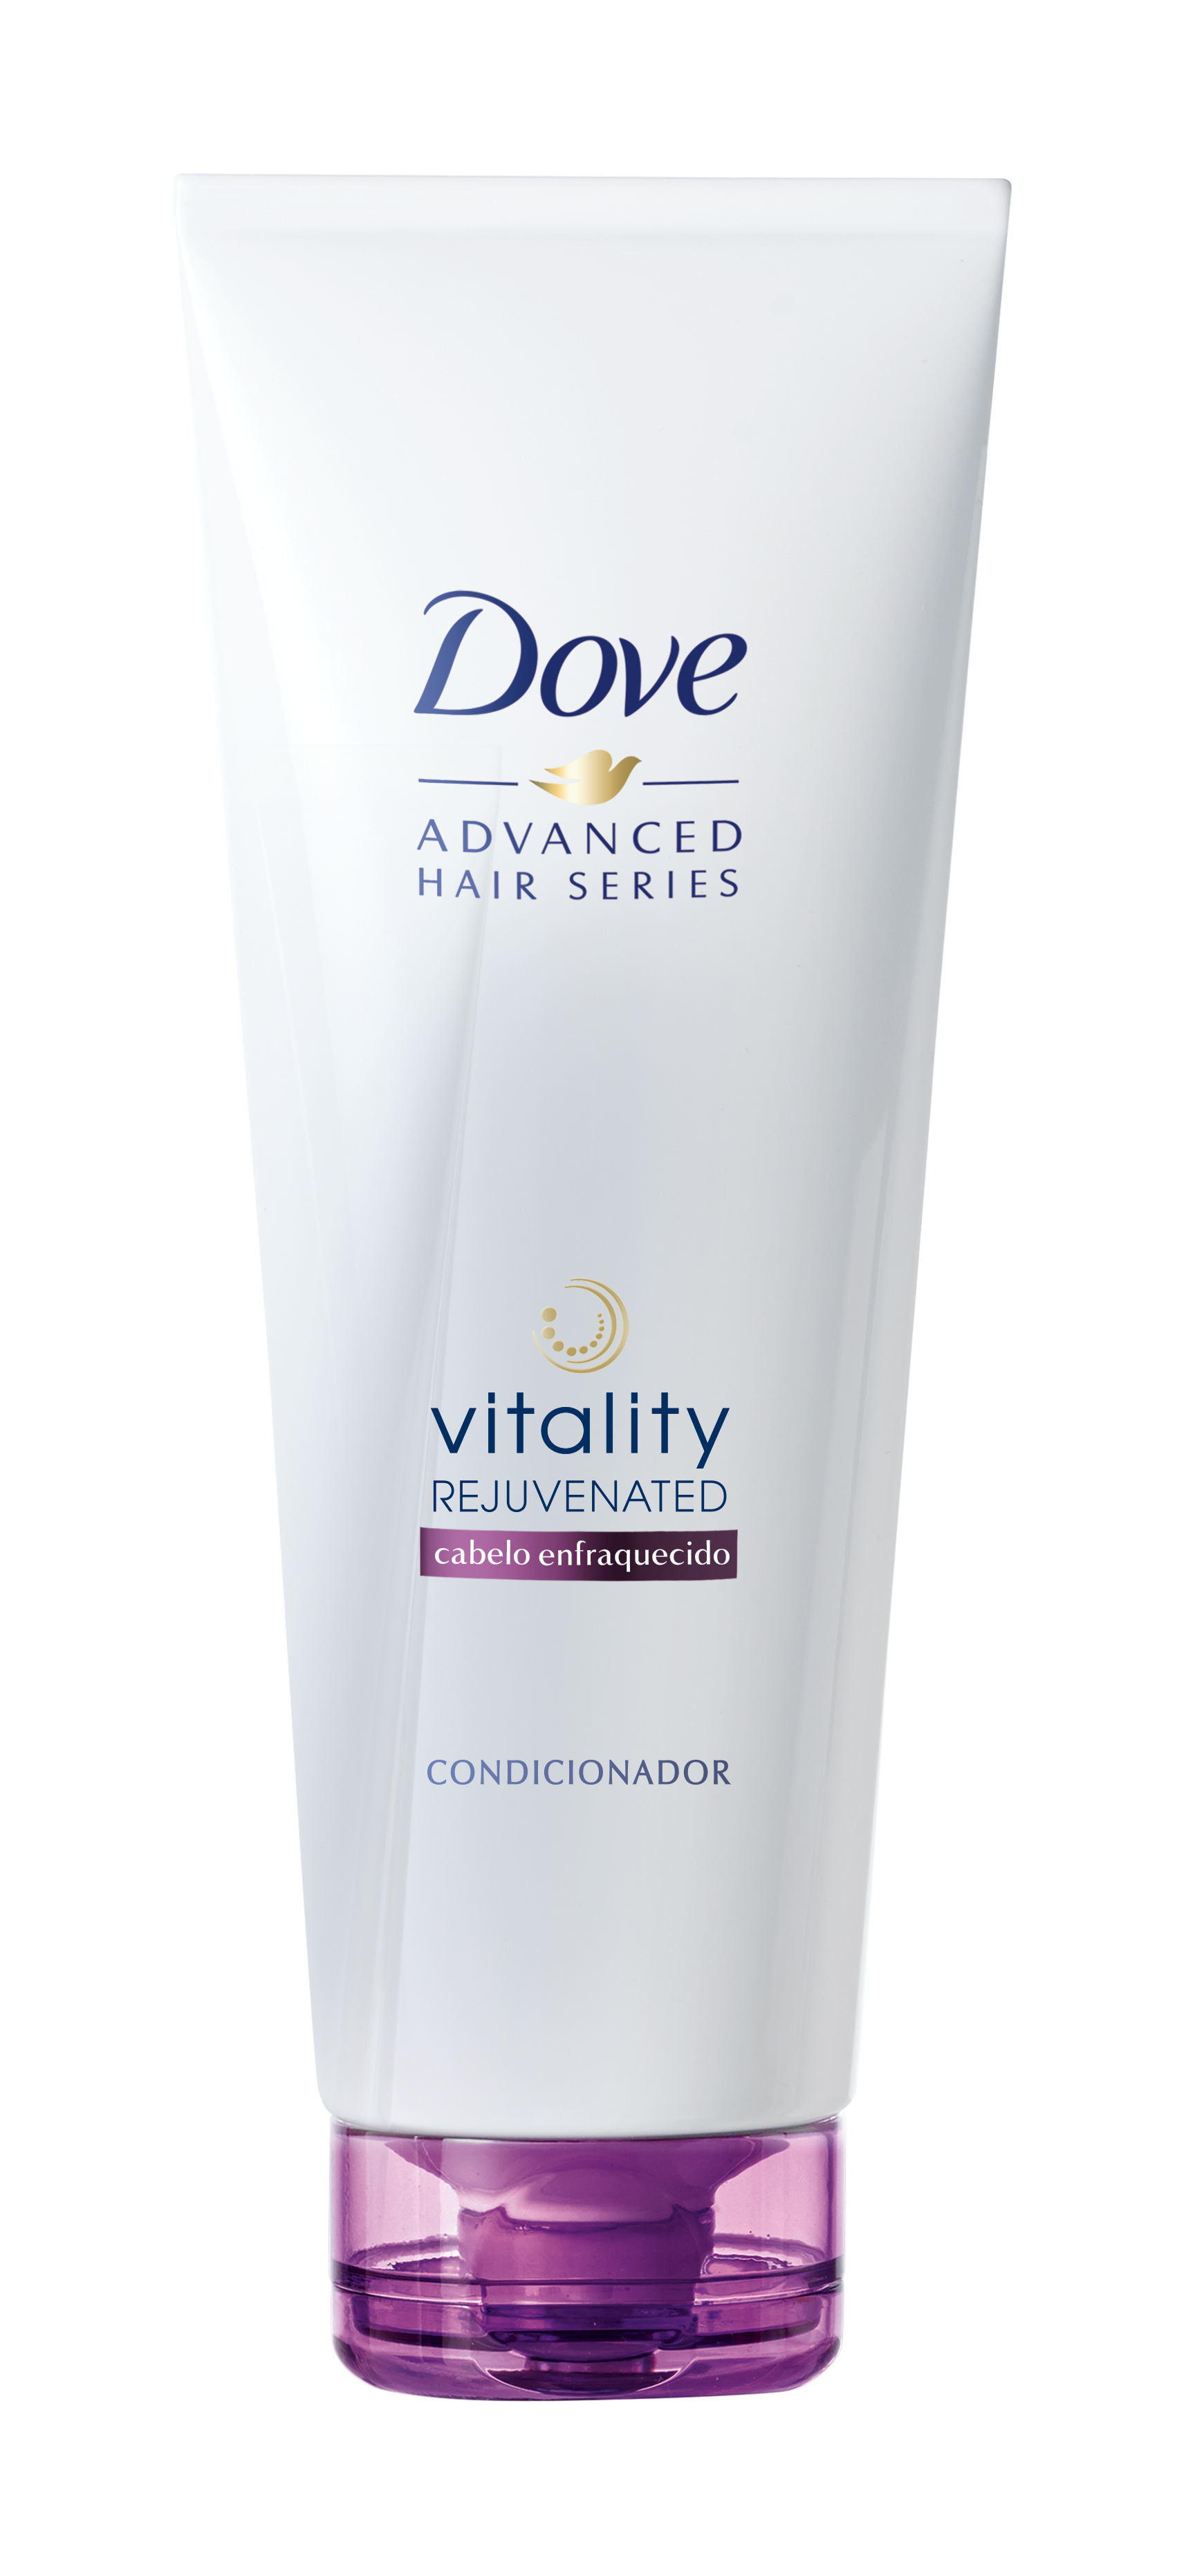 7891150036406 - CONDICIONADOR DOVE ADVANCED HAIR SERIES VITALITY REJUVENATED 200ML